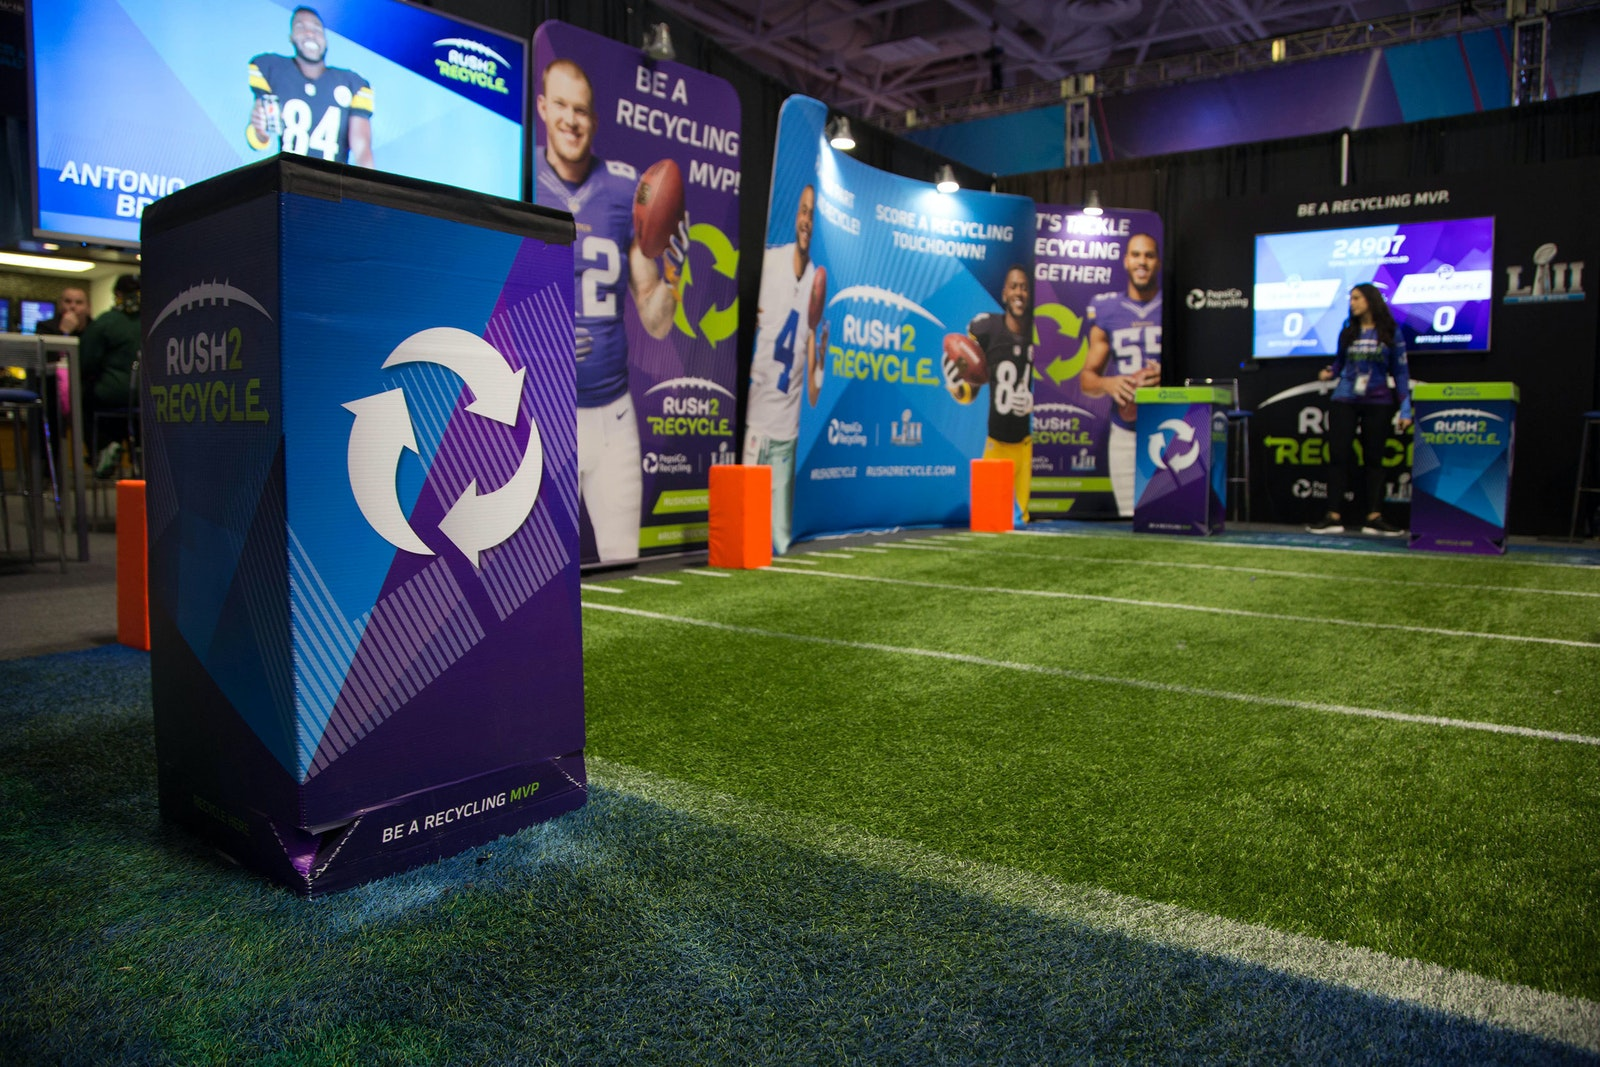 Rush2 Recycle NFL Experience